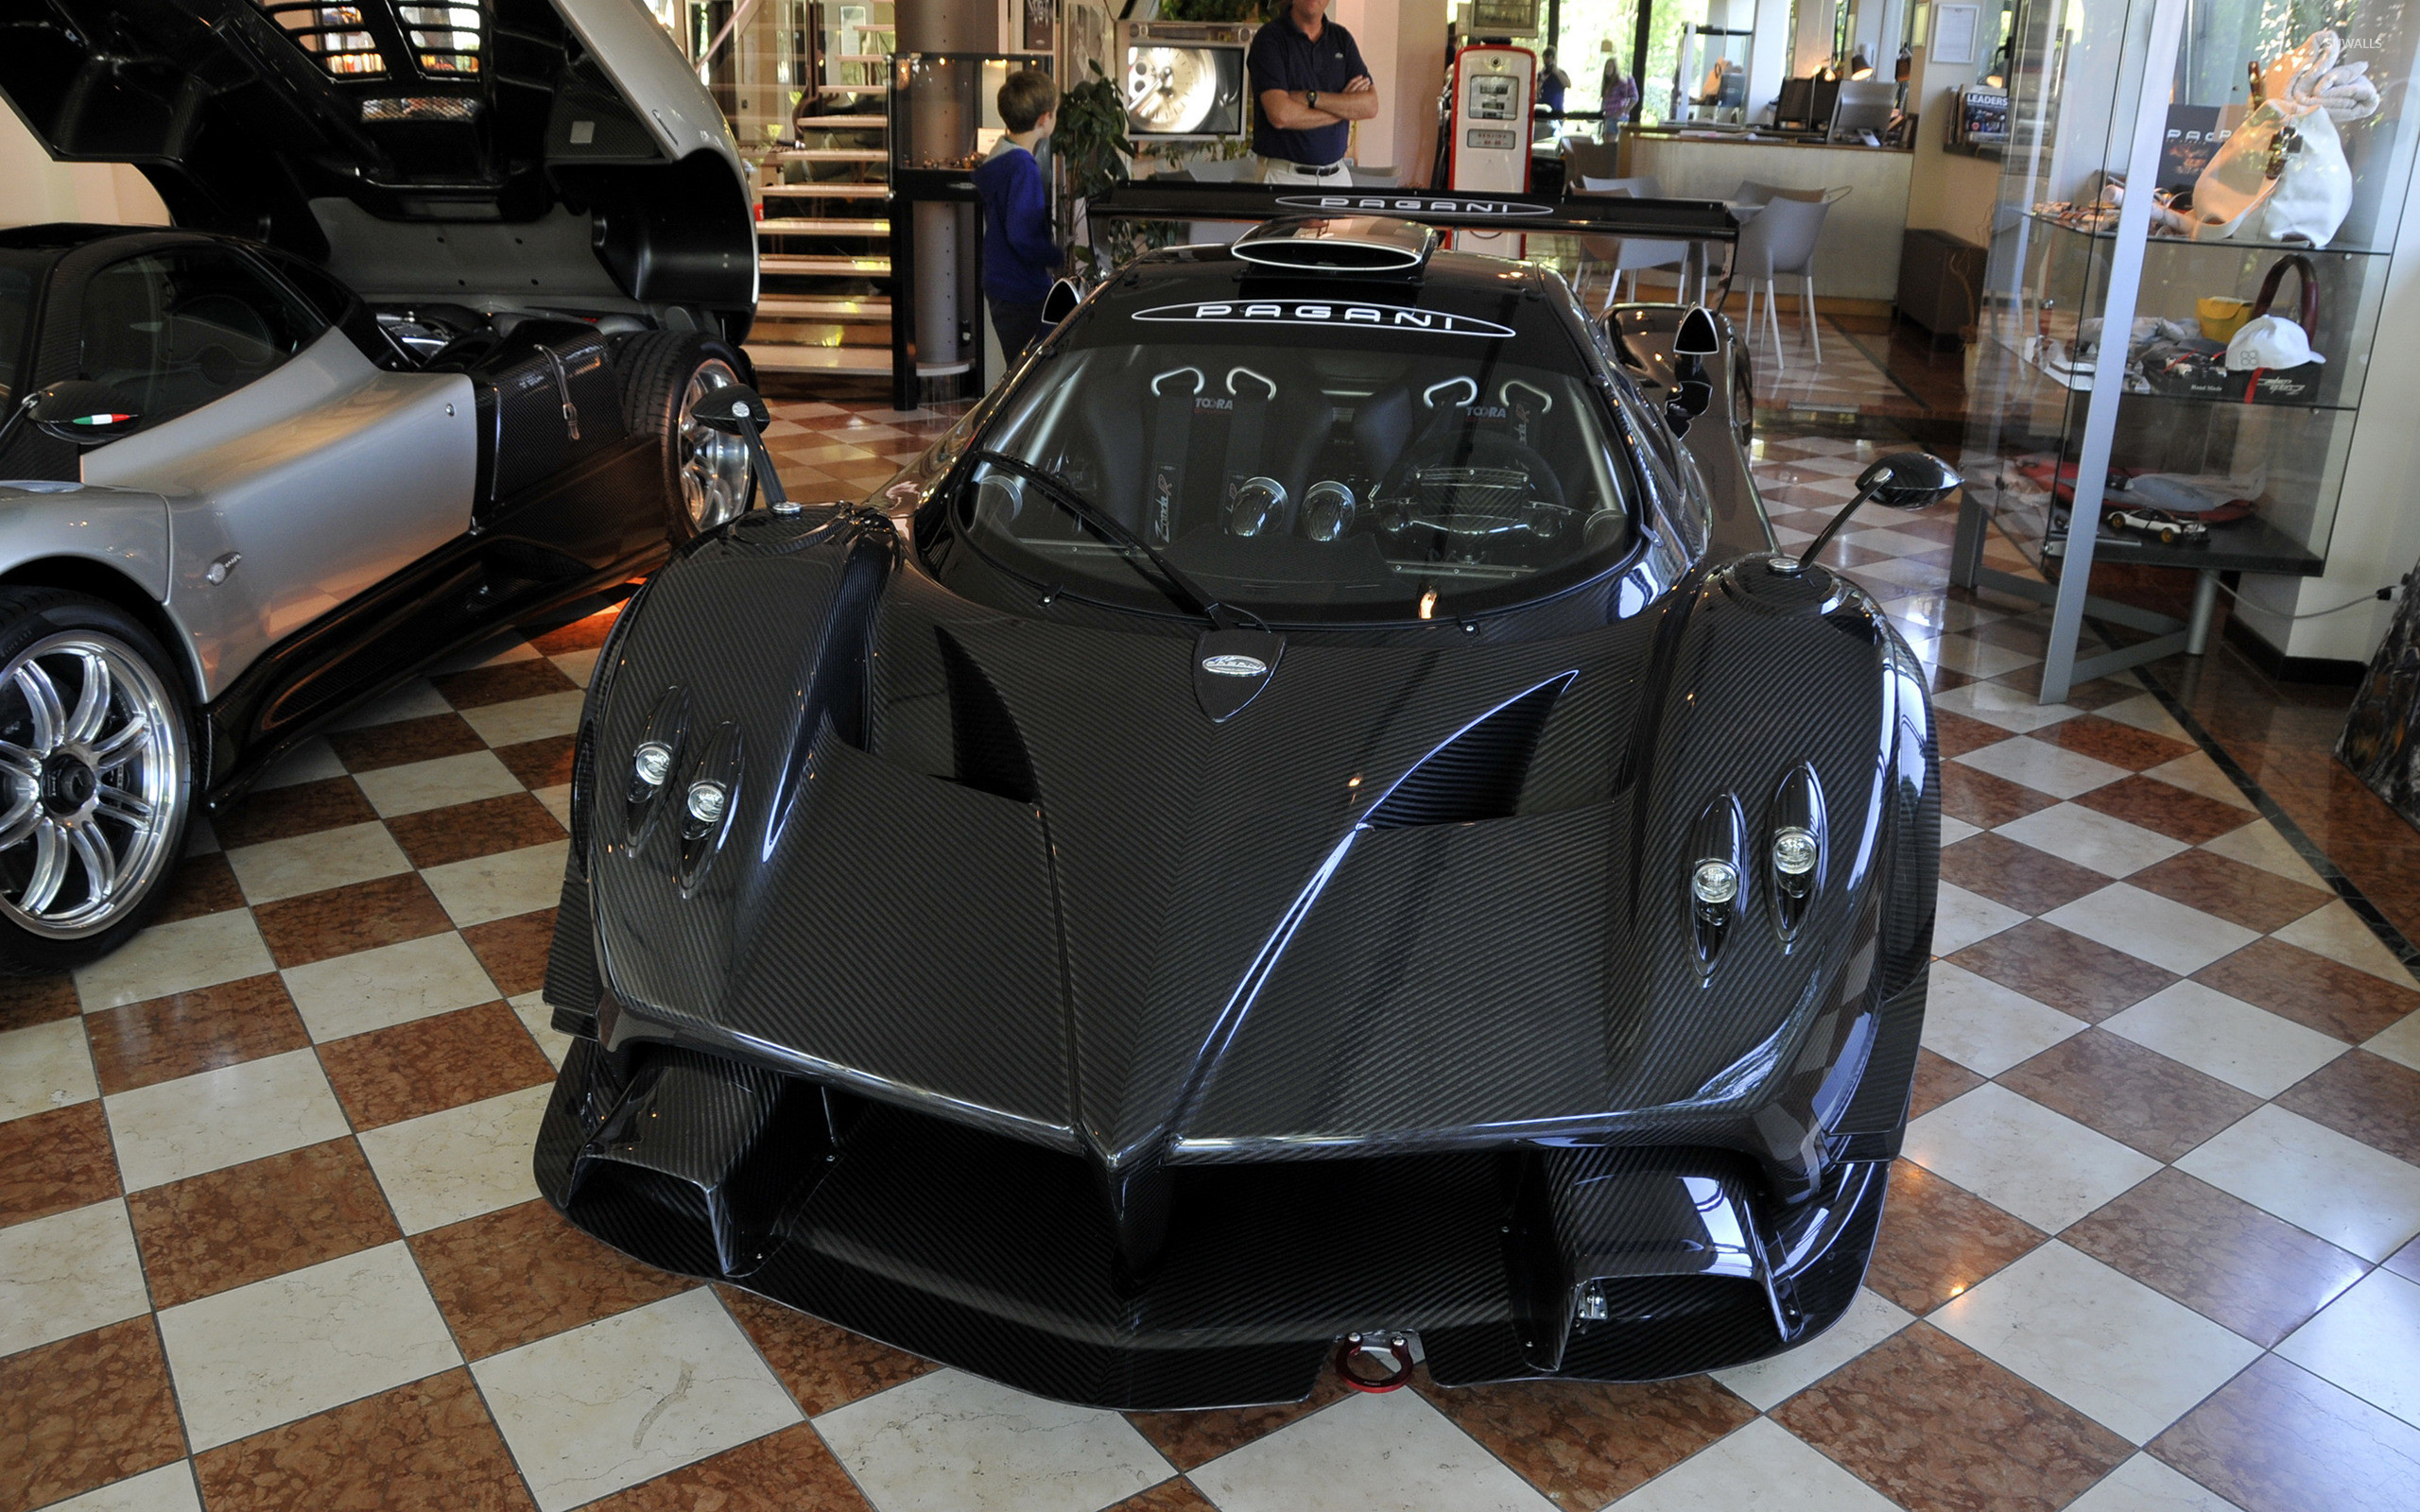 2560x1600 Black Pagani Zonda R in a museum wallpaper